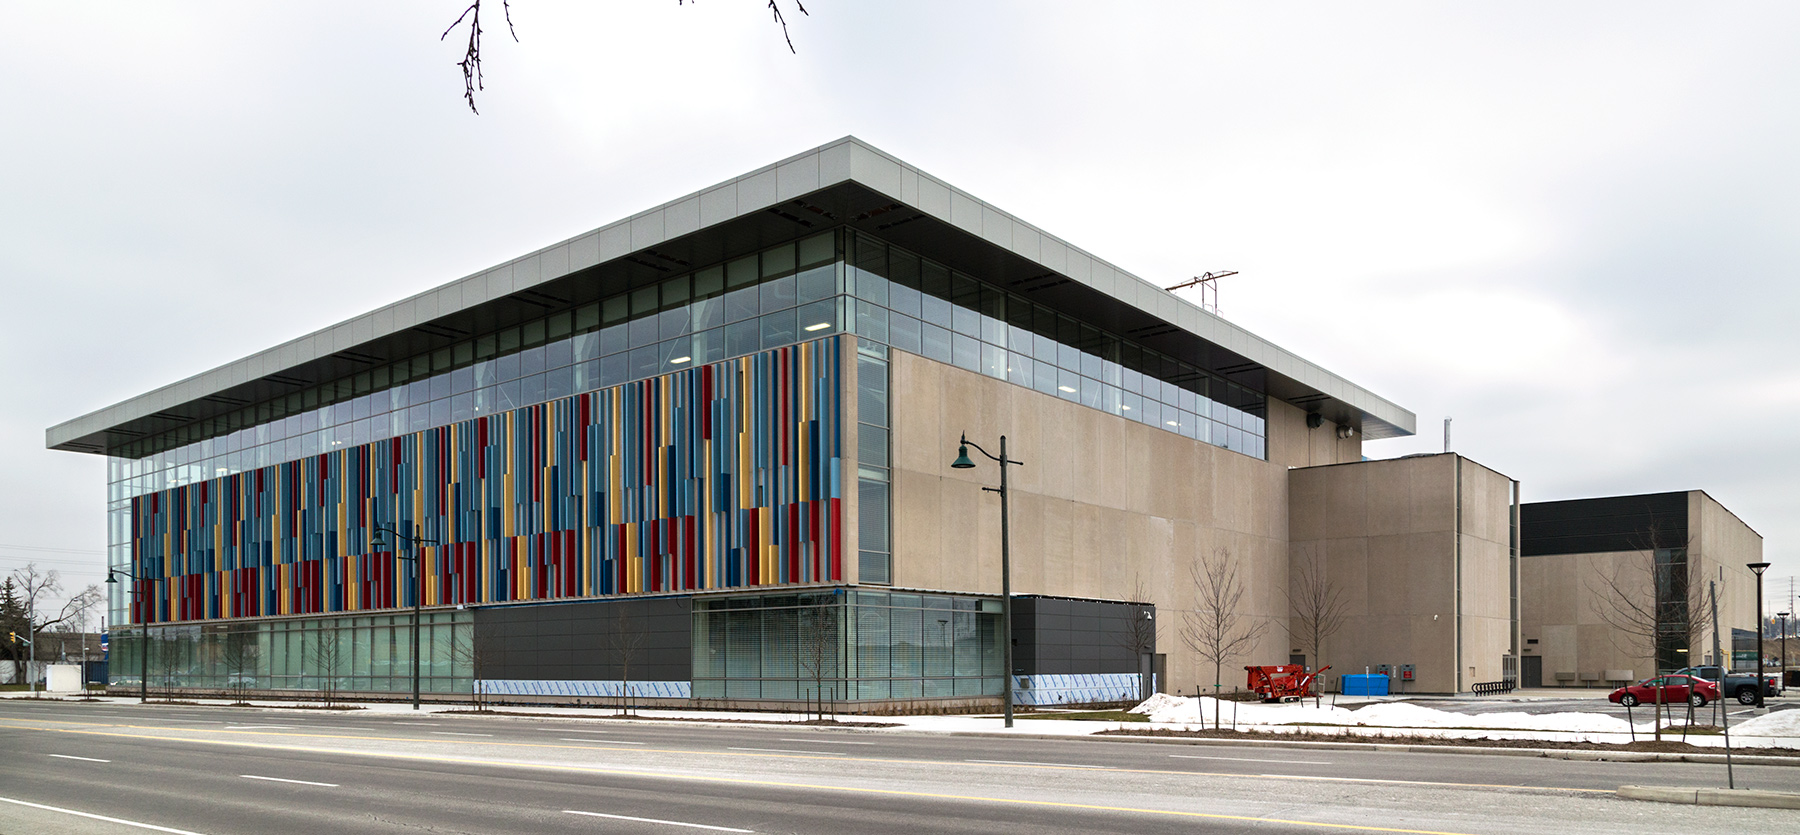 20140114. The Atos Markham Pan Am Centre will host water polo, b